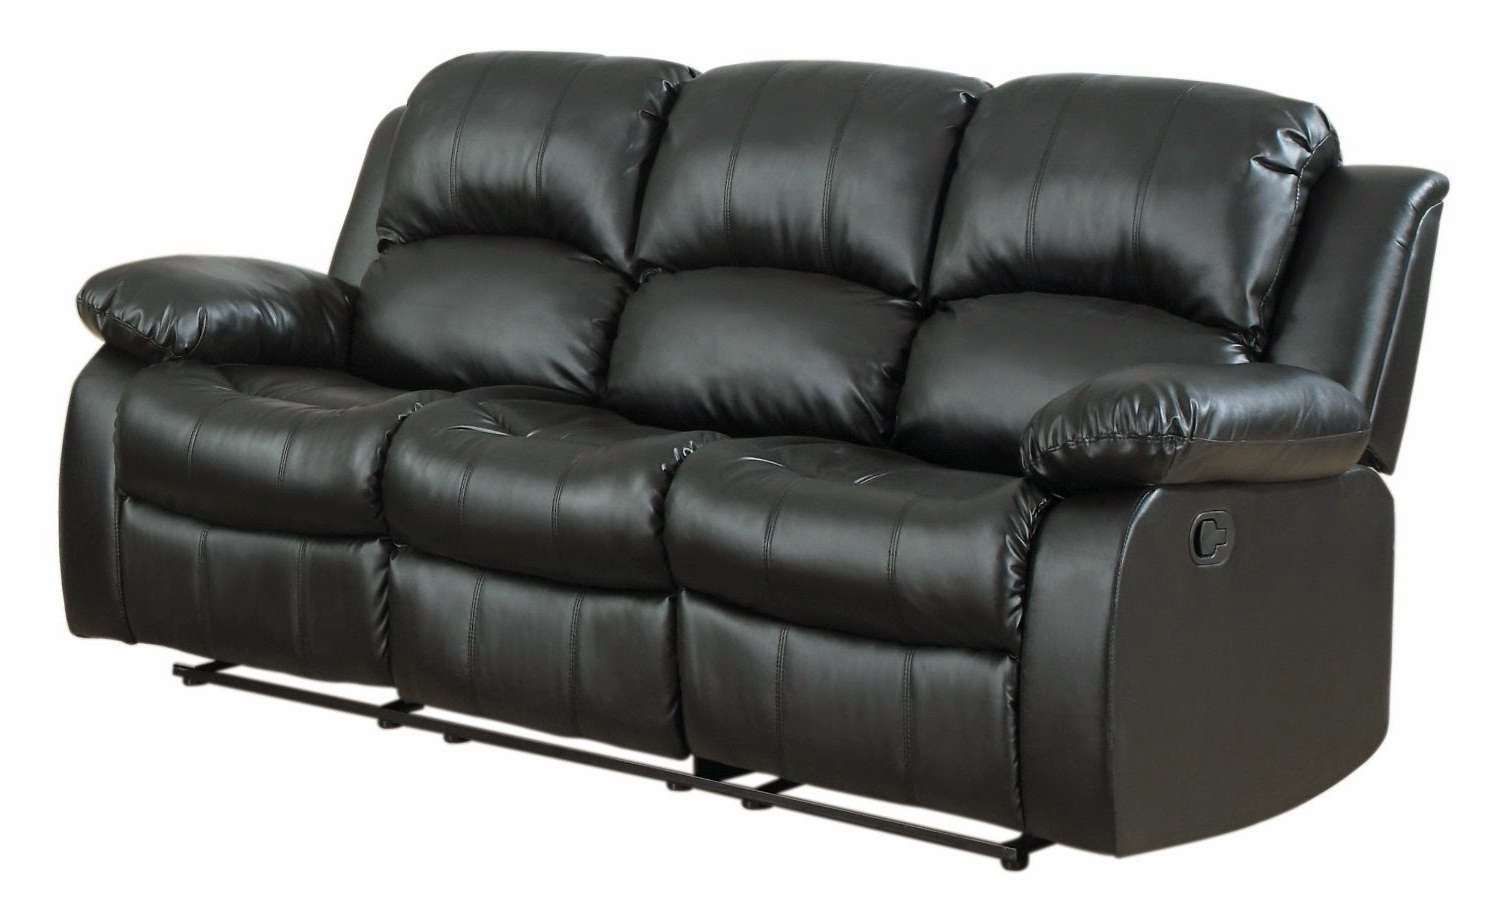 Famous Reclining Sofas For Sale: Berkline Leather Reclining Sofa Costco Throughout Berkline Sectional Sofas (View 11 of 15)